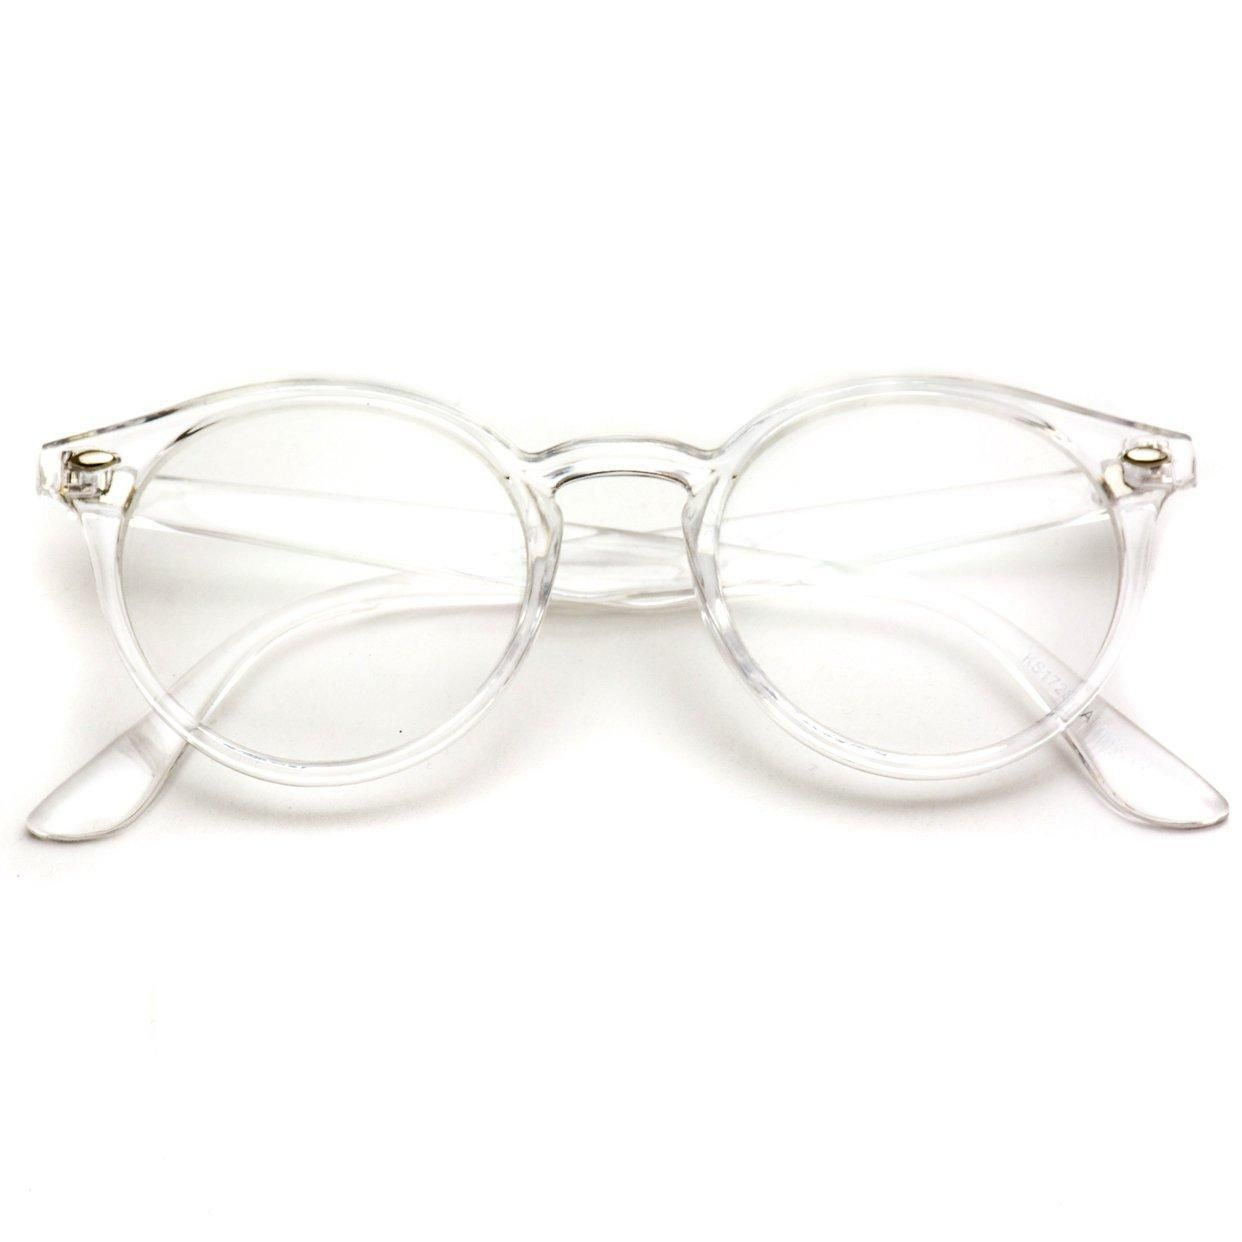 de218f4951b Ainsley Transparent Round Clear Frame Glasses - Clear Optical ...